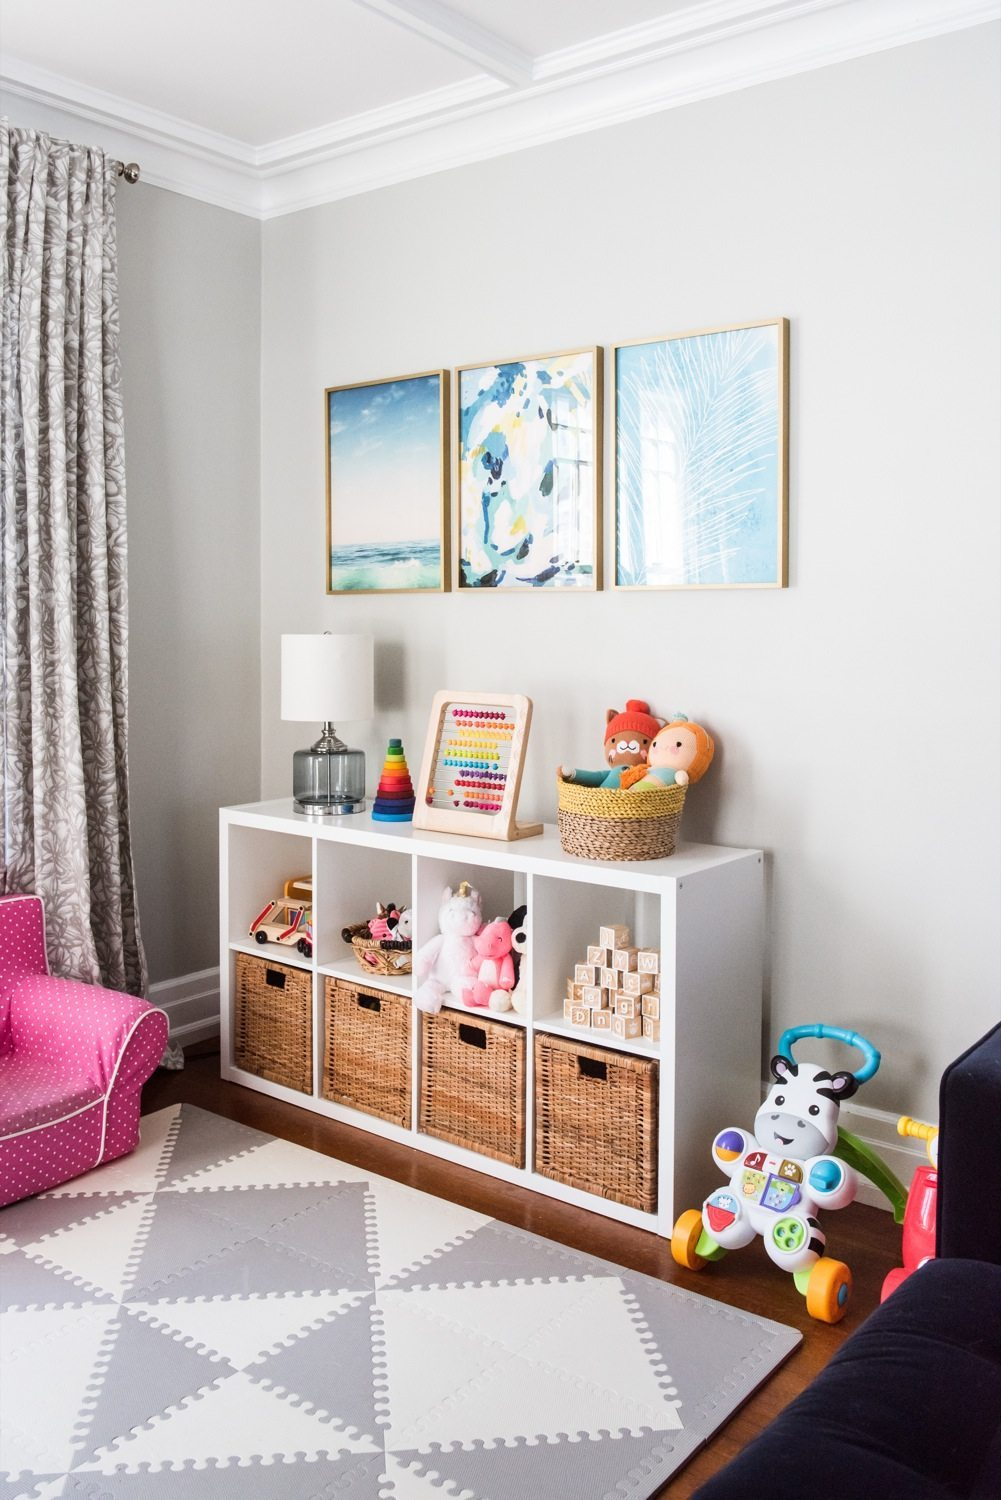 Emerson 39 s modern playroom tour the sweetest occasion for Art decoration ideas